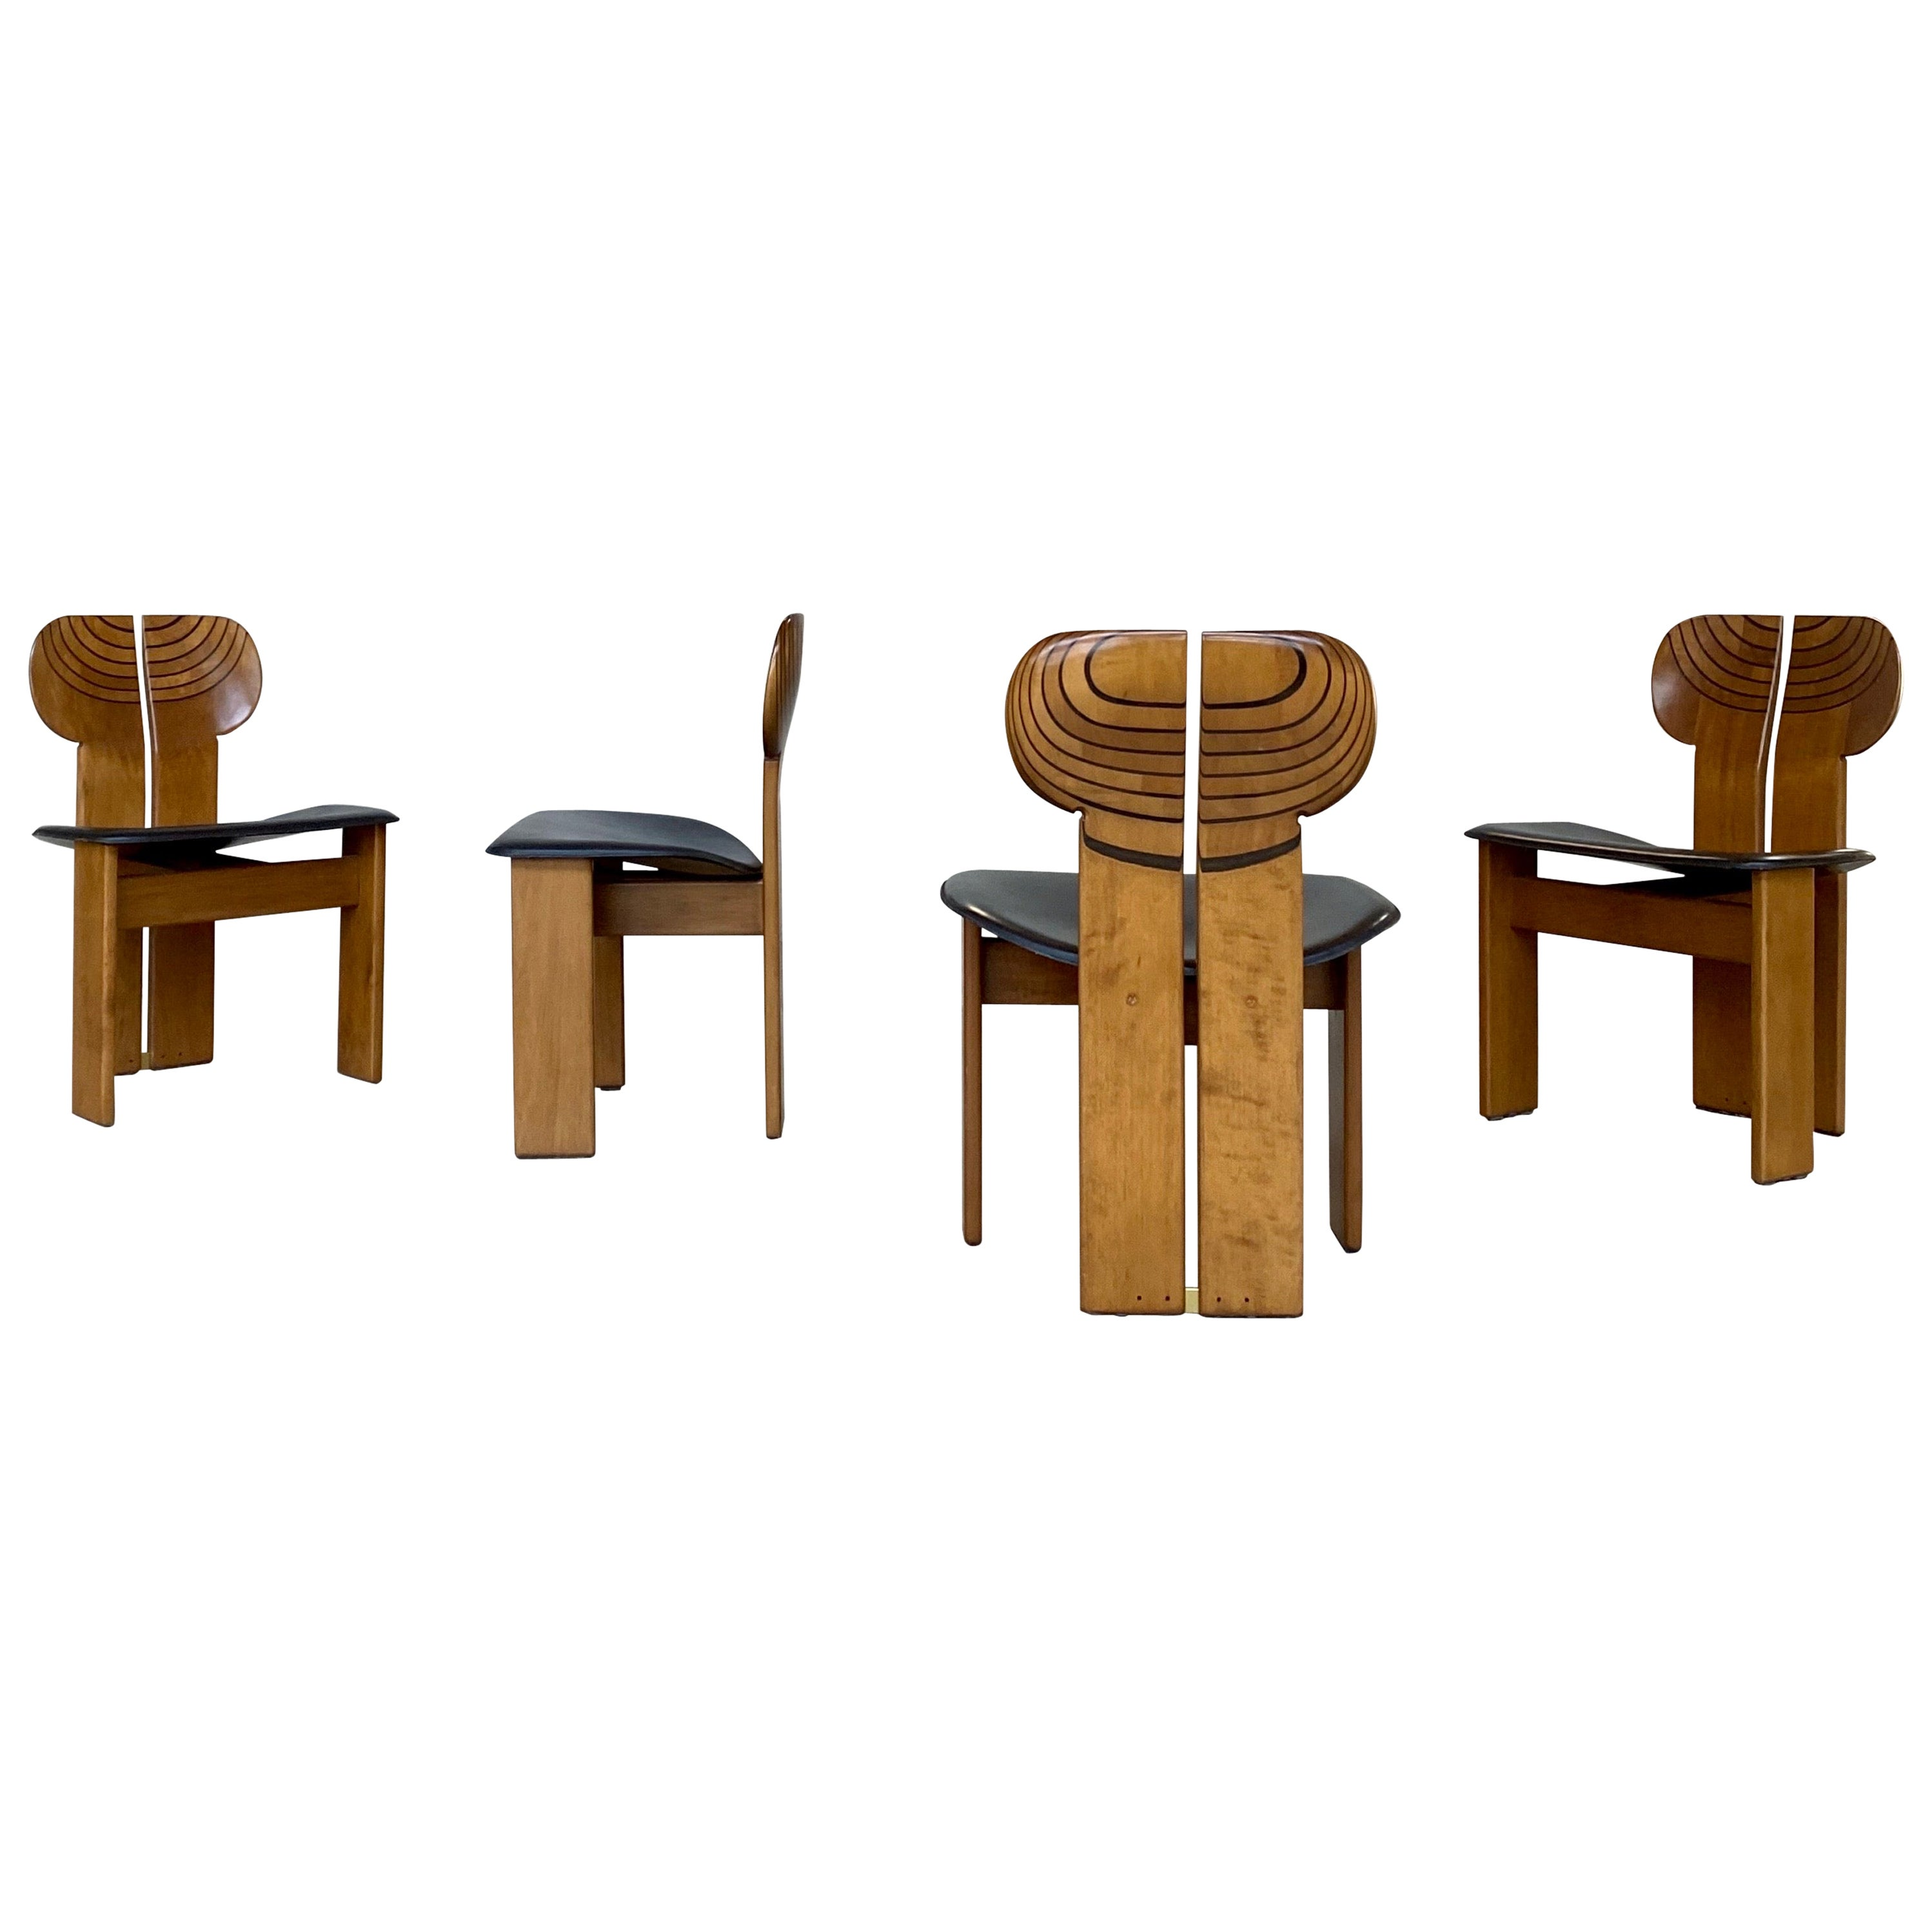 "Afra & Tobia Scarpa ""Africa"" Dining Chairs for Maxalto, 1975"